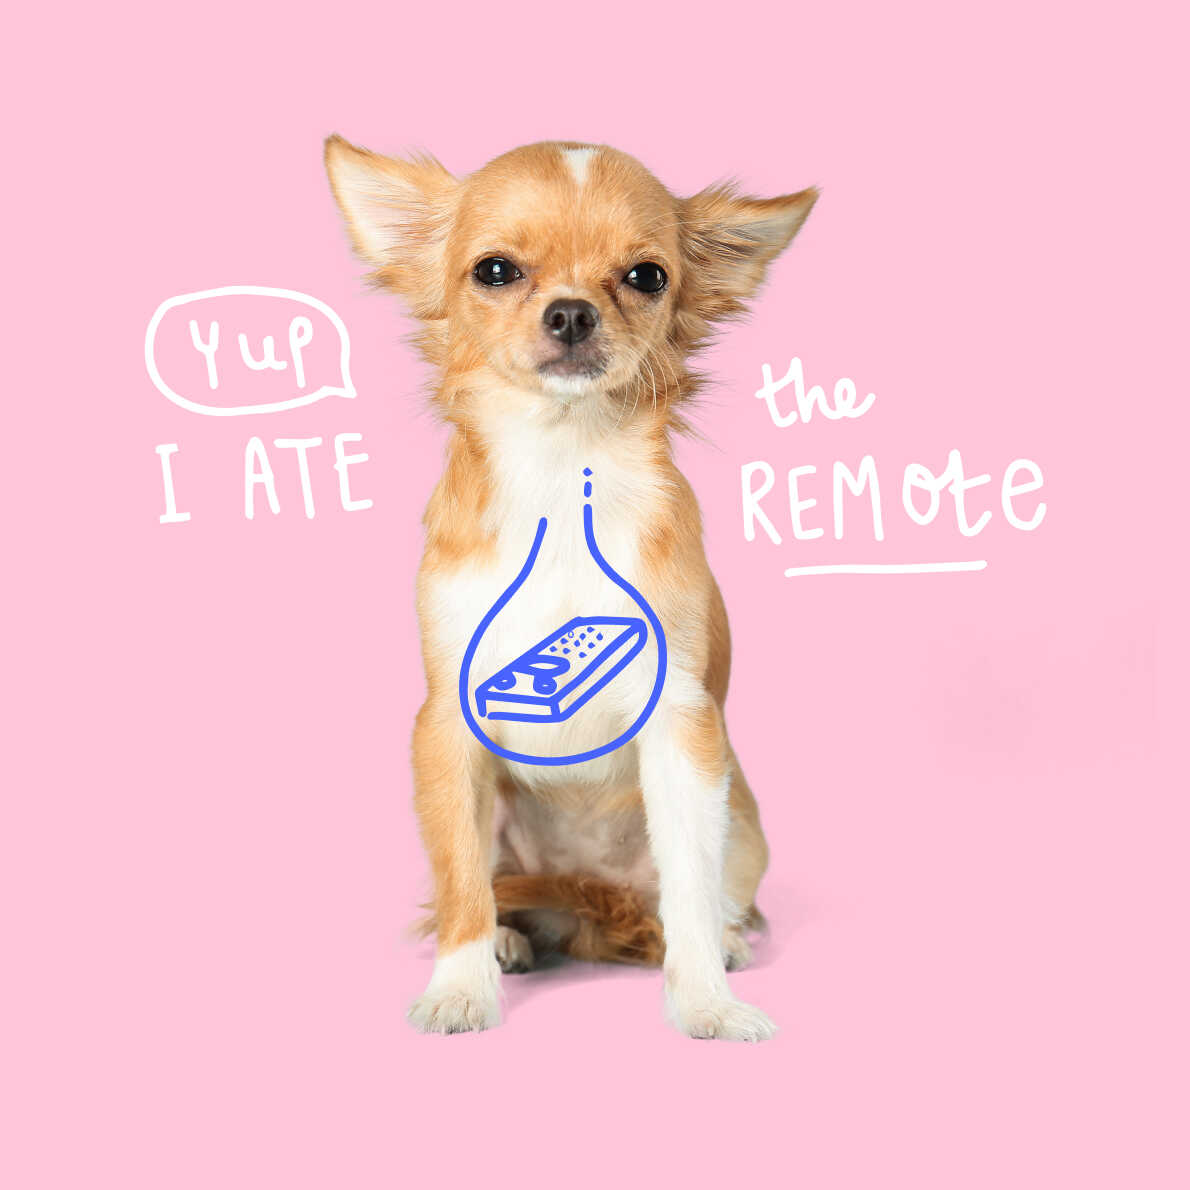 Chihuahua who ate the remote